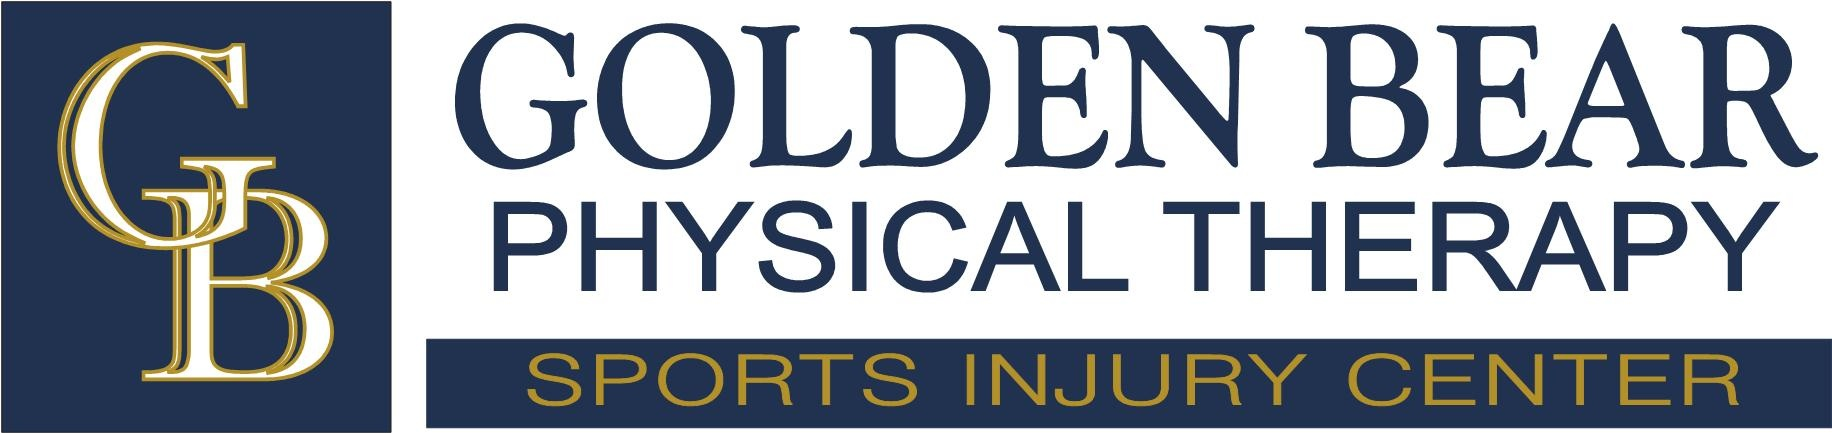 Golden Bear Physical Therapy Logo